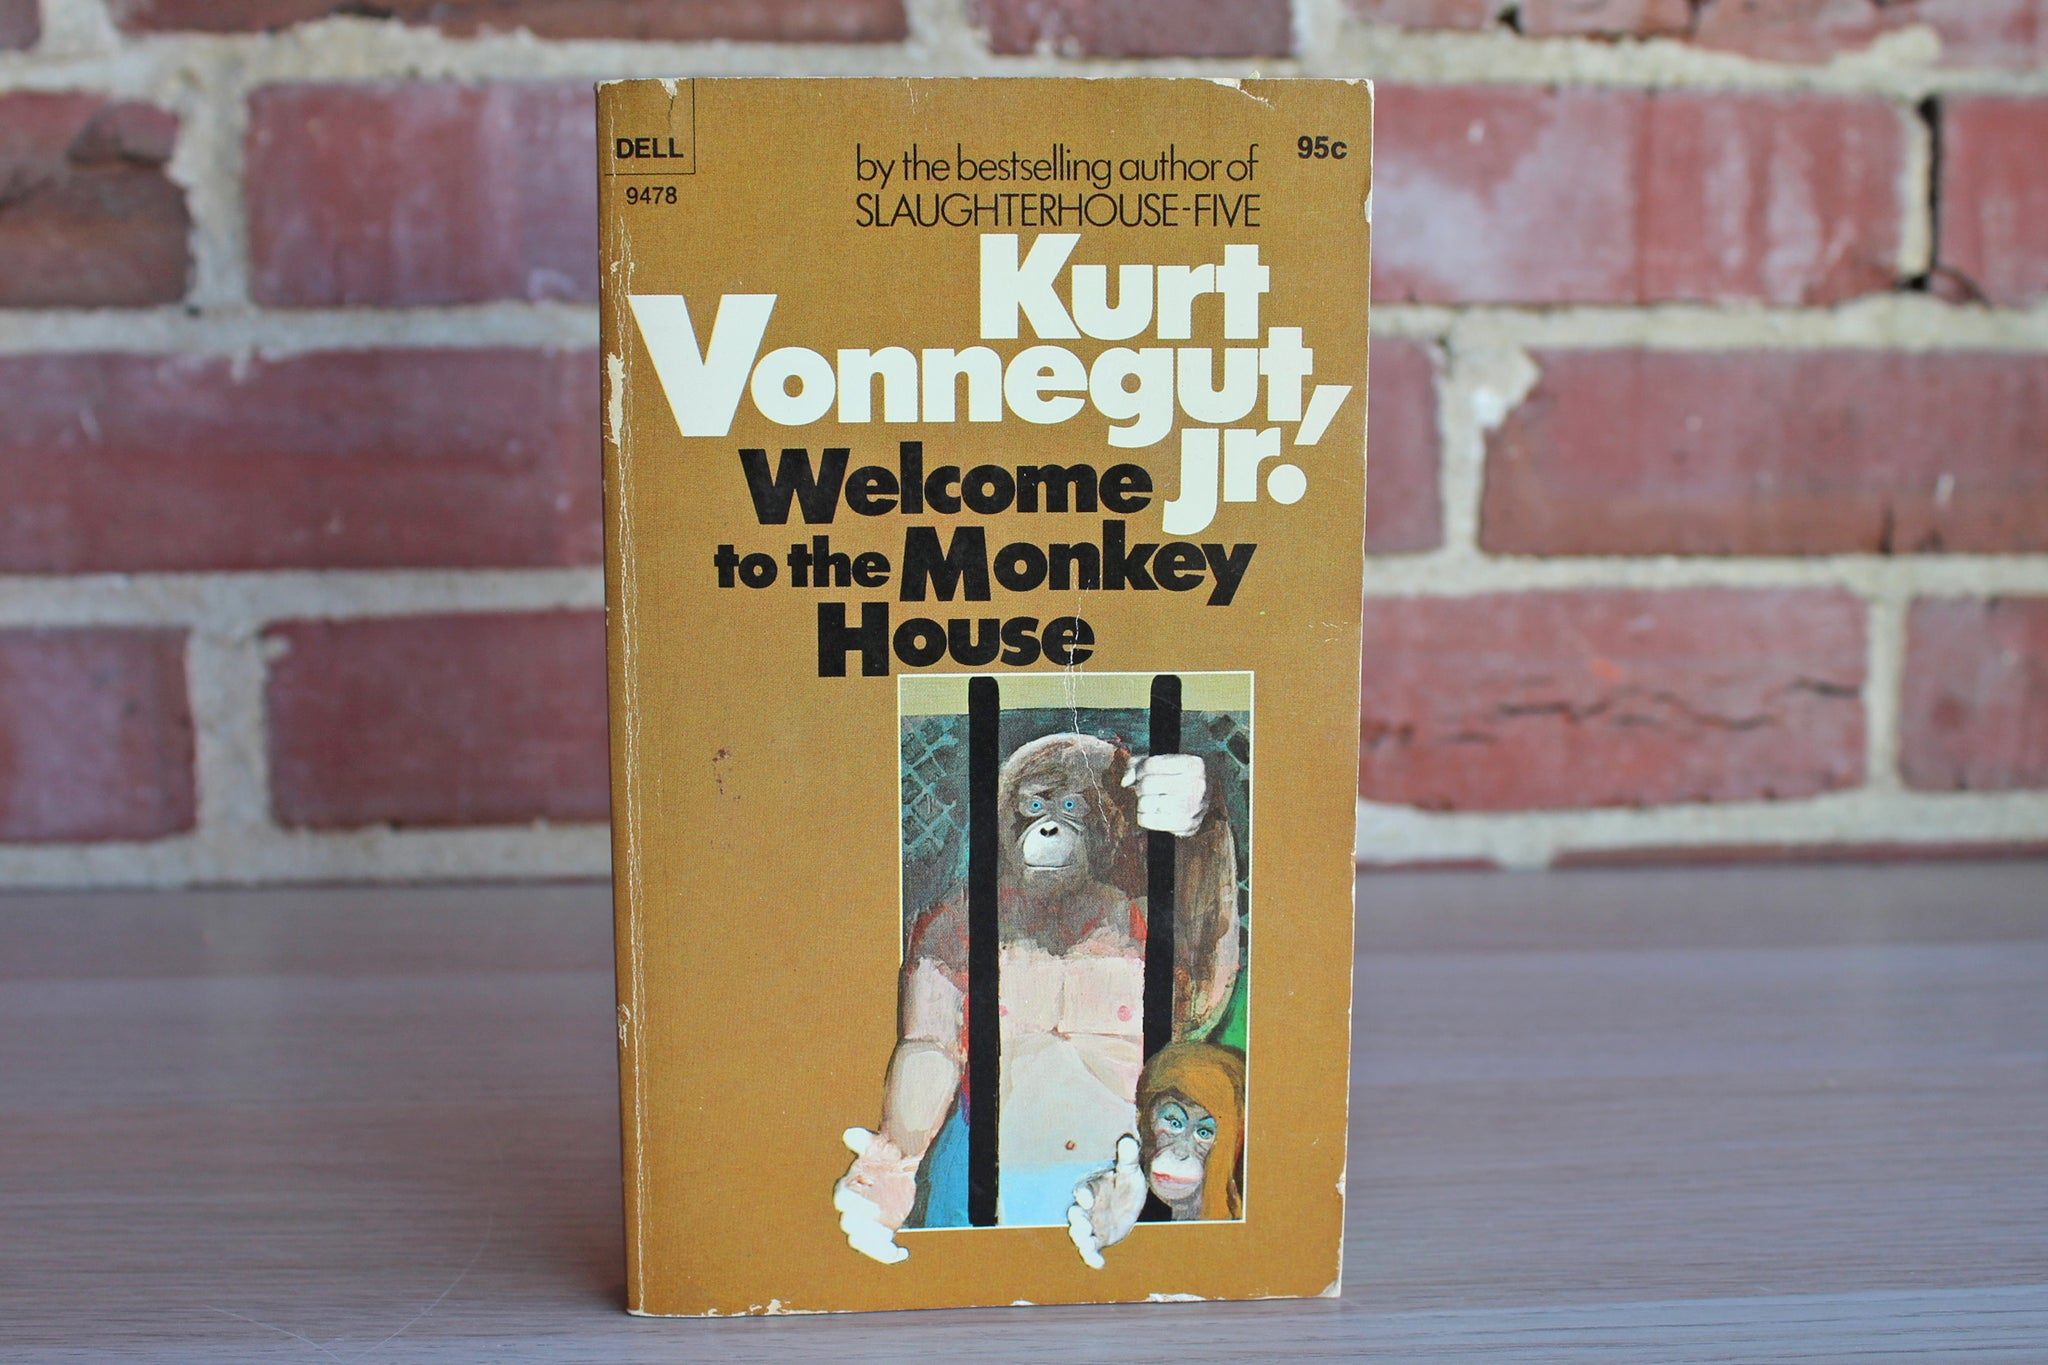 Welcome to the Monkey House by Kurt Vonnegut, Jr.